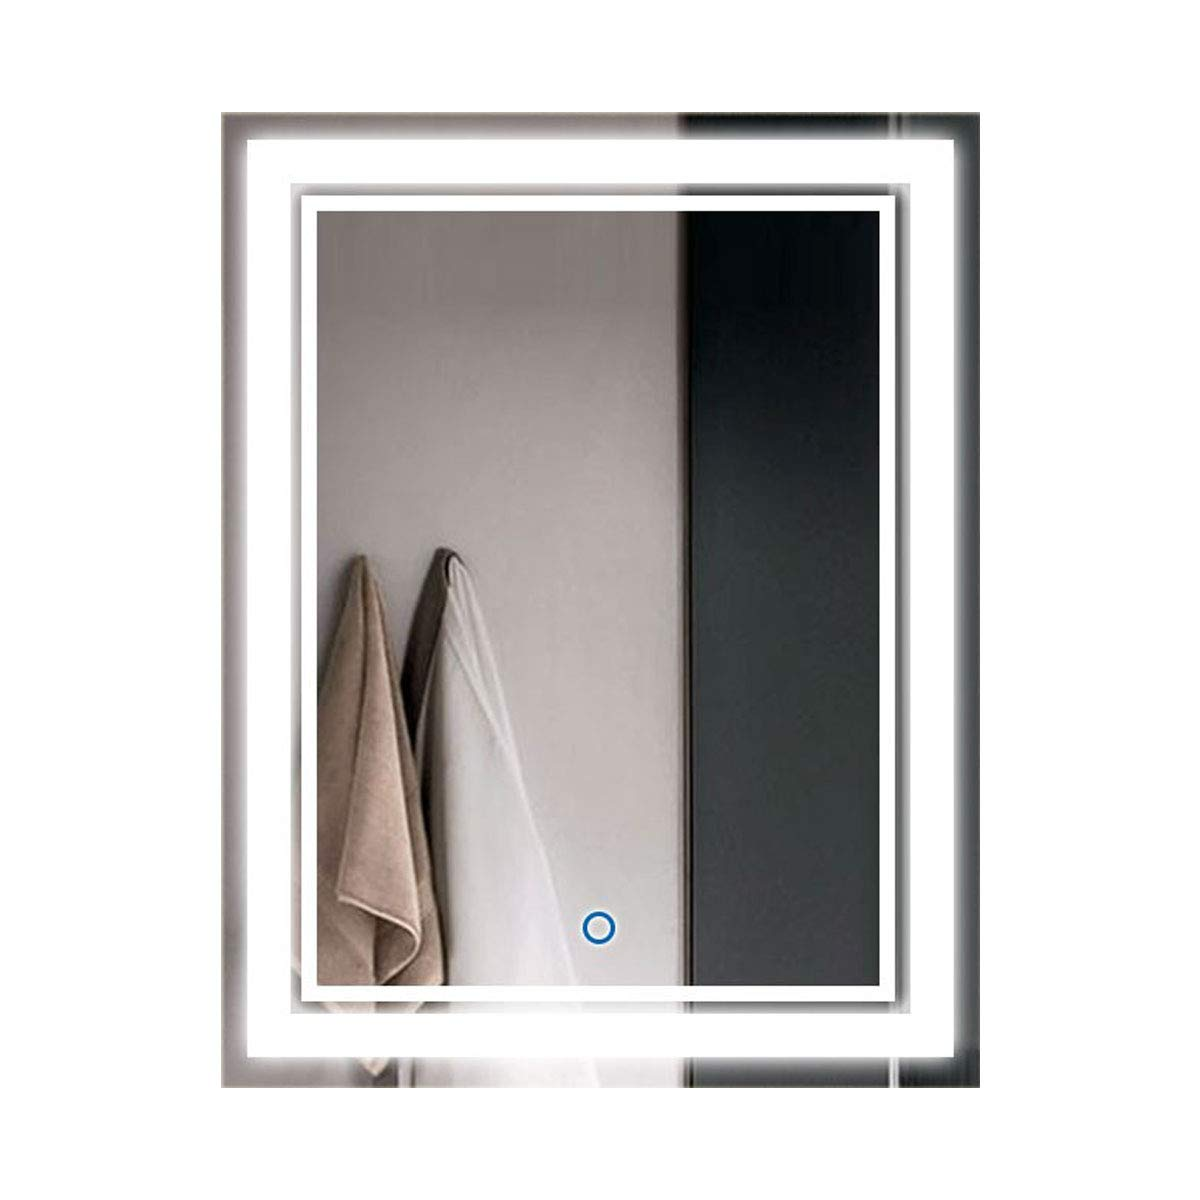 Vertical LED Lighted Vanity Bathroom Silvered Mirror with Touch Button, Make up Mirror Wall Bar Mirror (DK-OD-CK160) (Queen) by Better Home Better Life